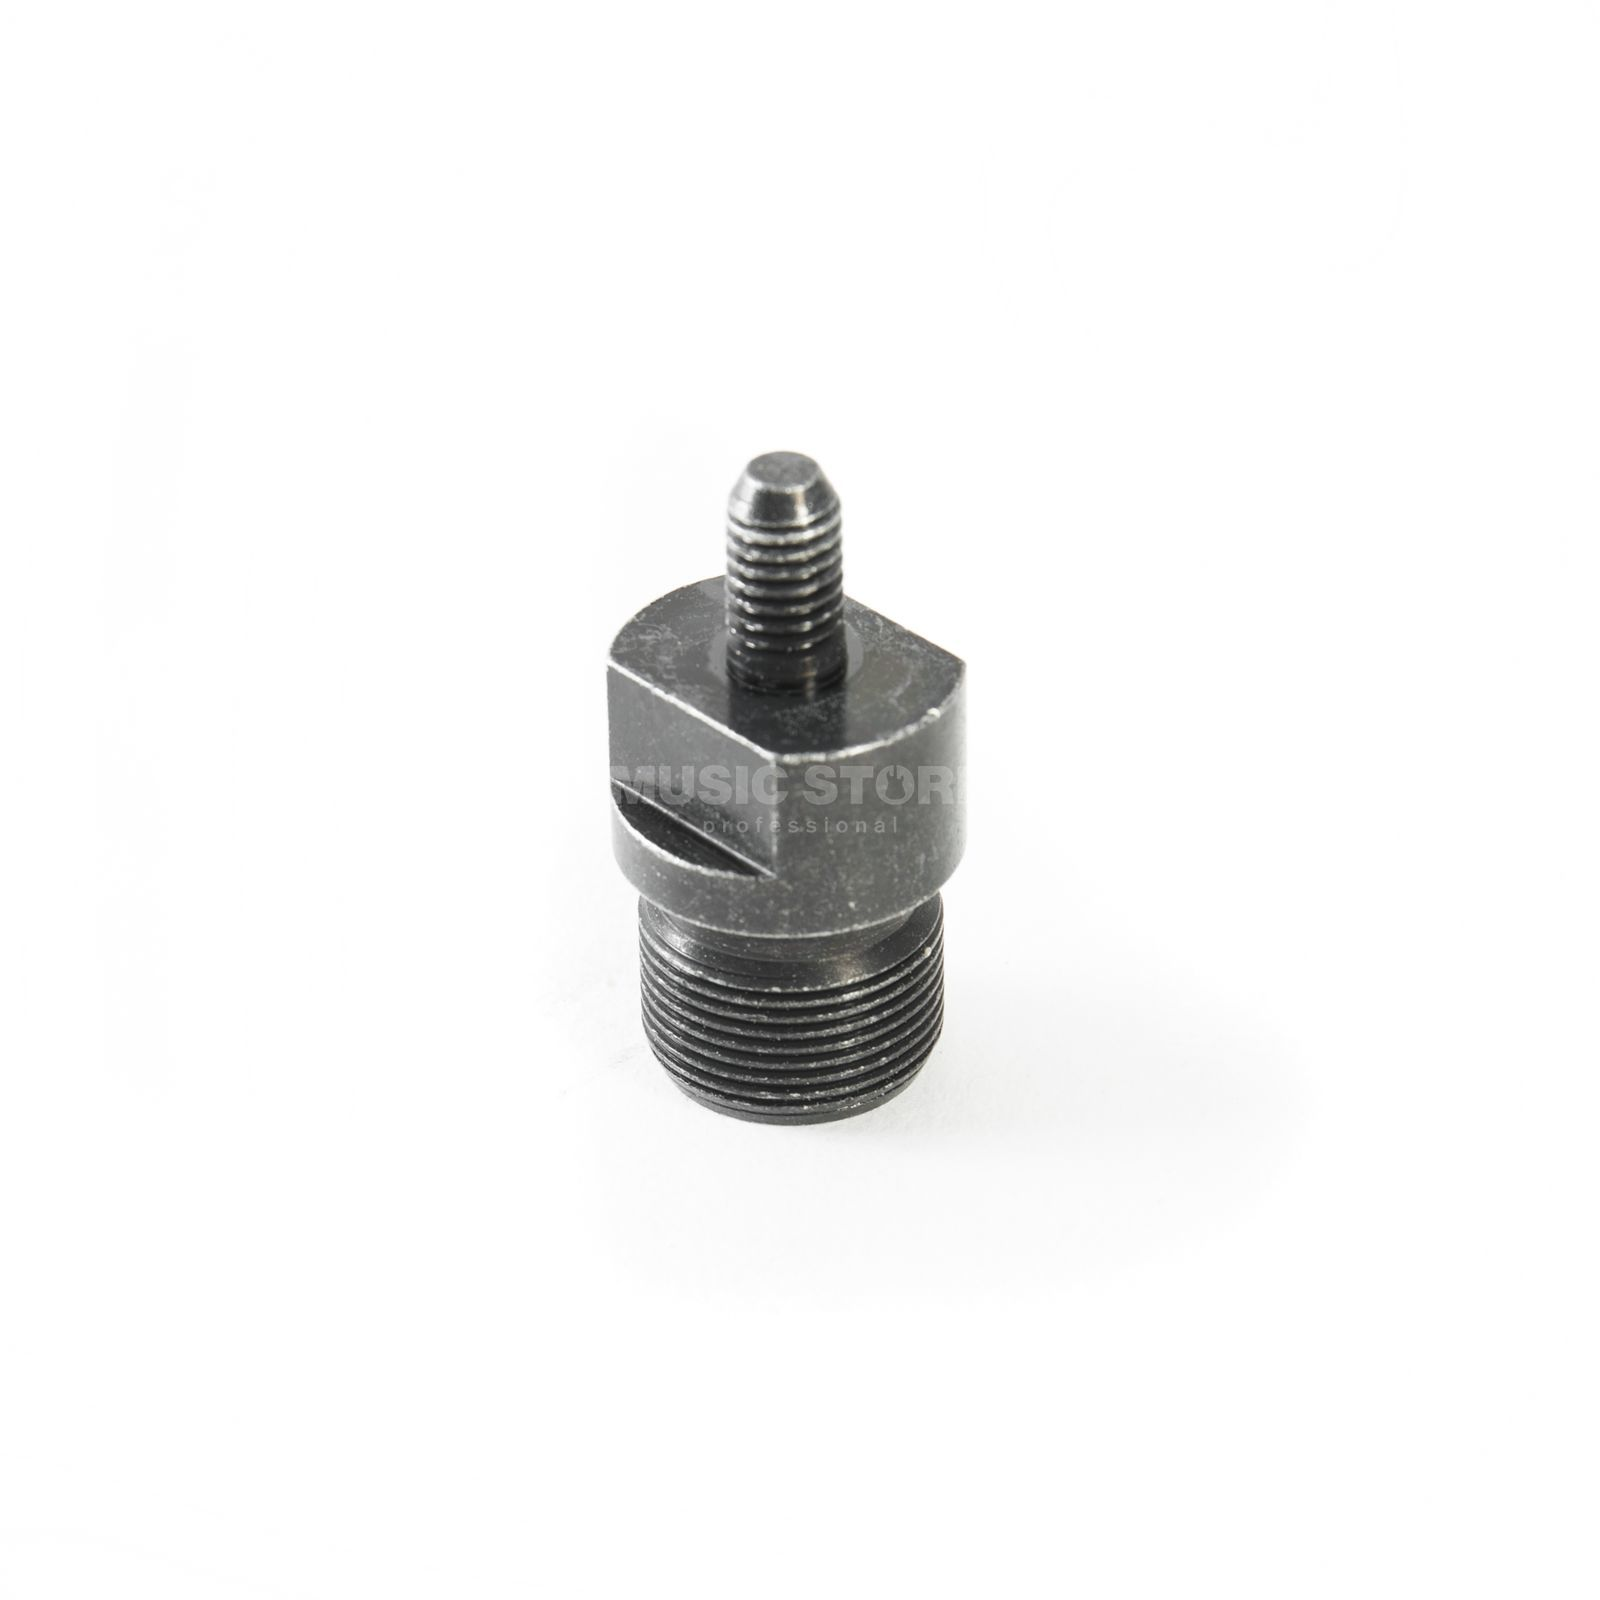 "König & Meyer 23721 Threaded bolt 5/8"" x 34,5 mm Produktbillede"